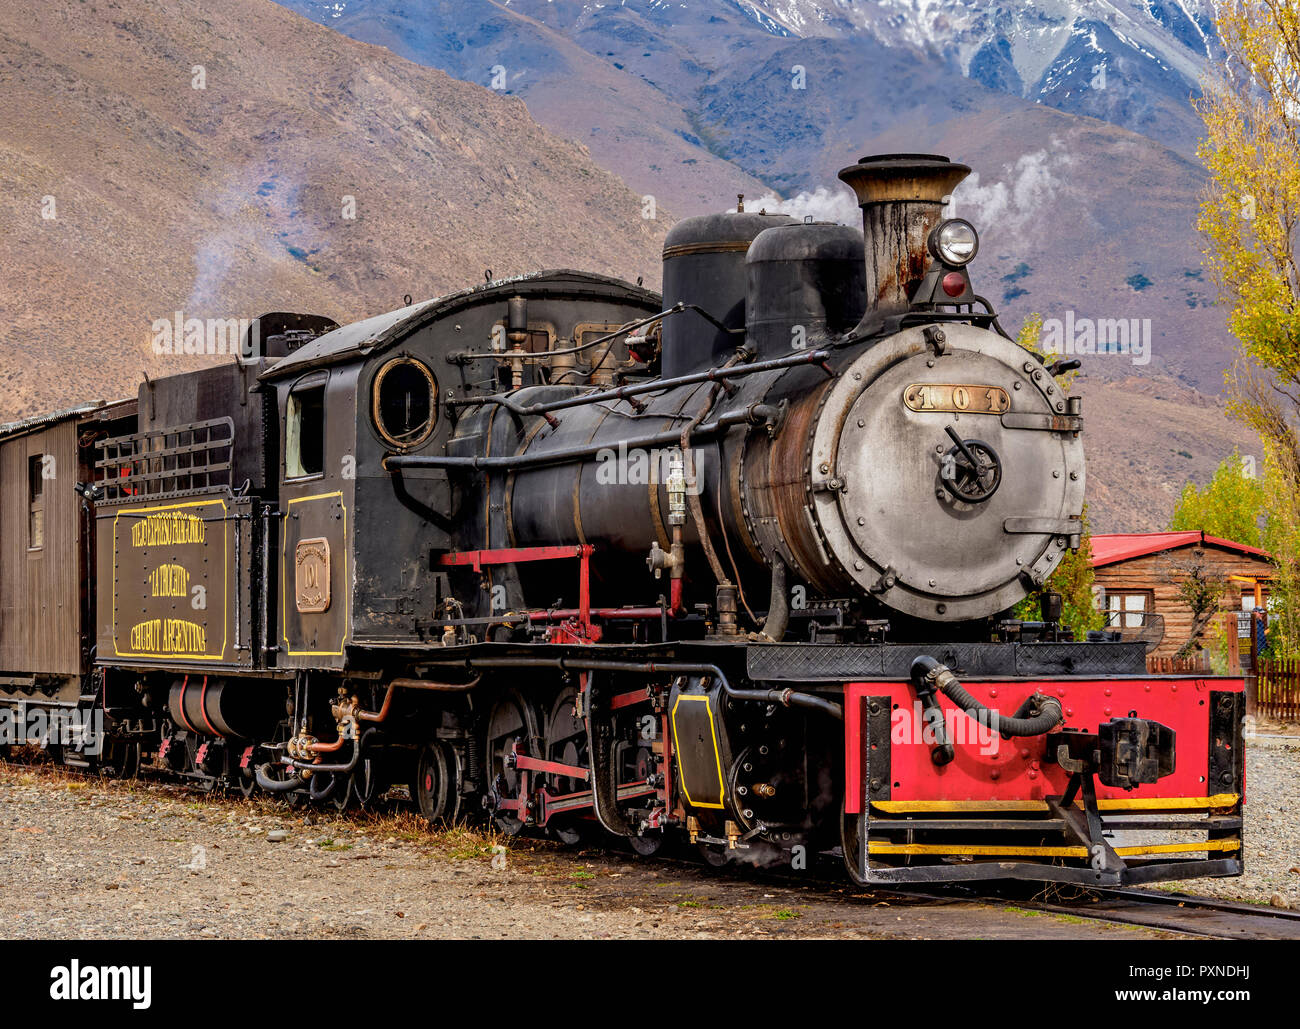 Old Patagonian Express La Trochita, steam train, Nahuel Pan Train Station, Chubut Province, Patagonia, Argentina - Stock Image